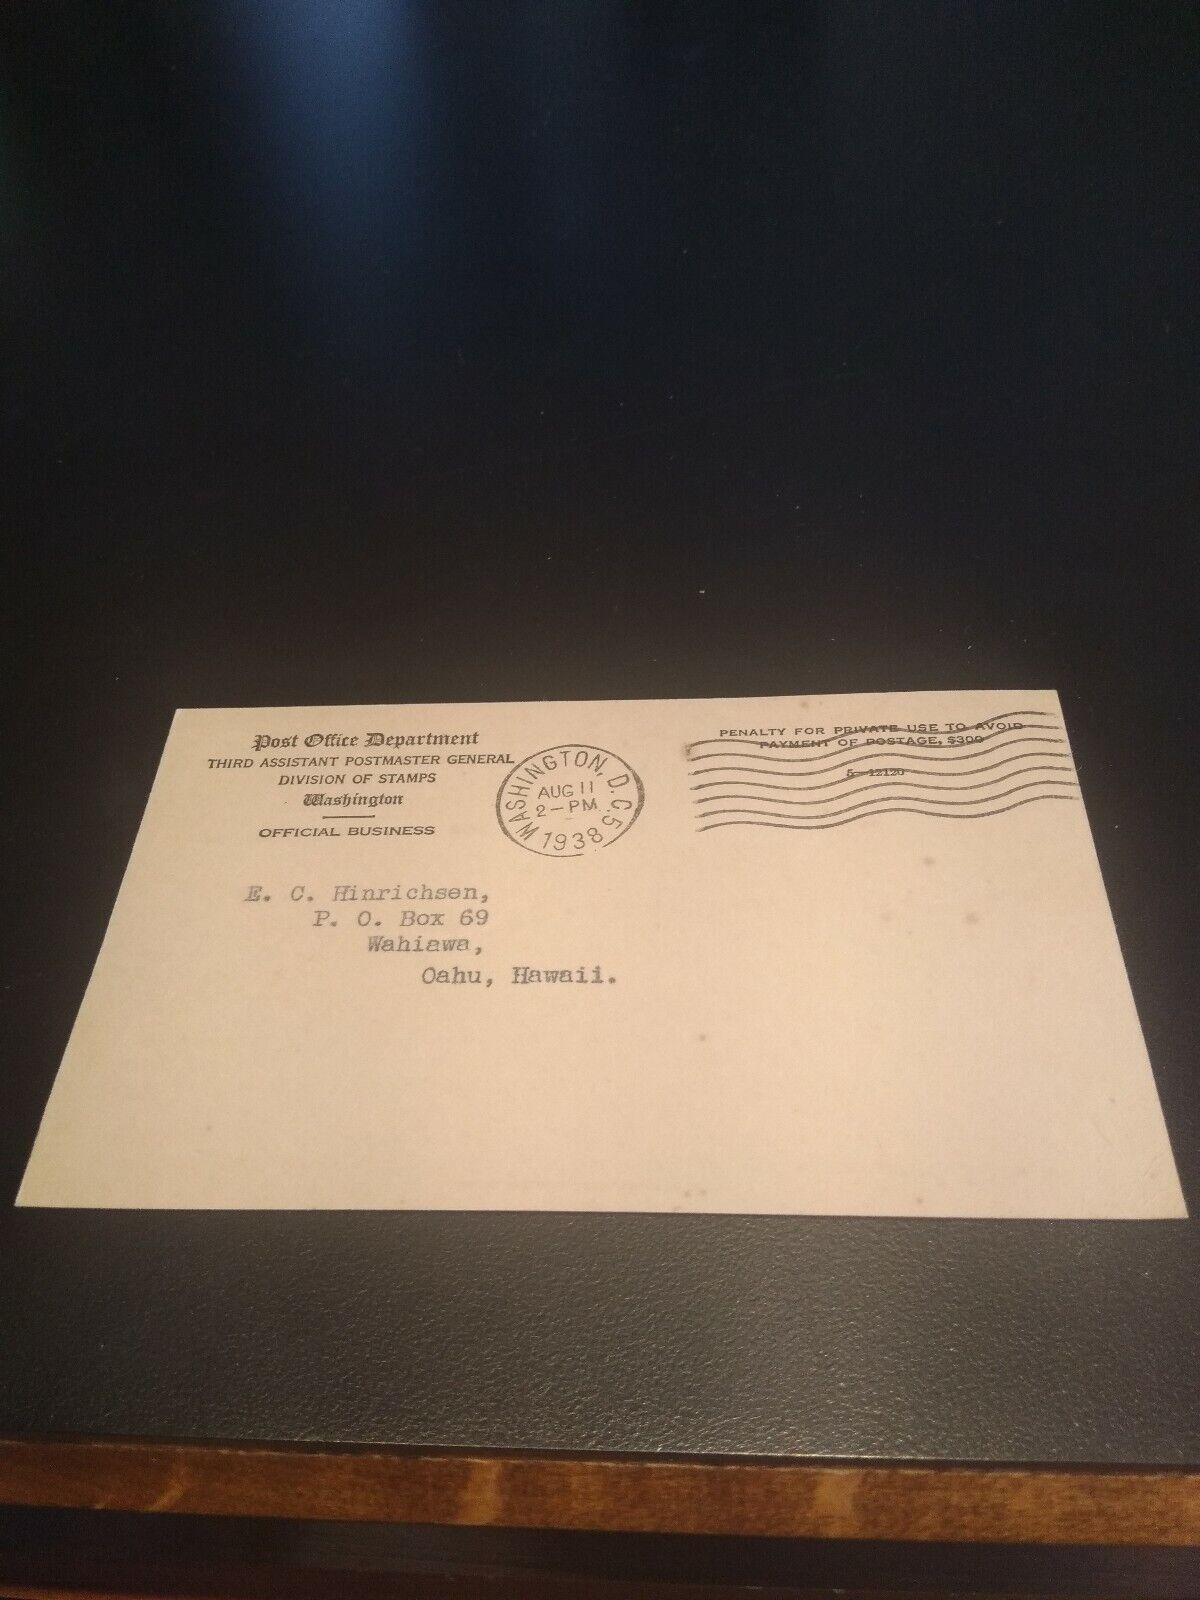 1.00 Ordinary Stamps 1938 POD Post Office Department Release Notification Card  - $7.50